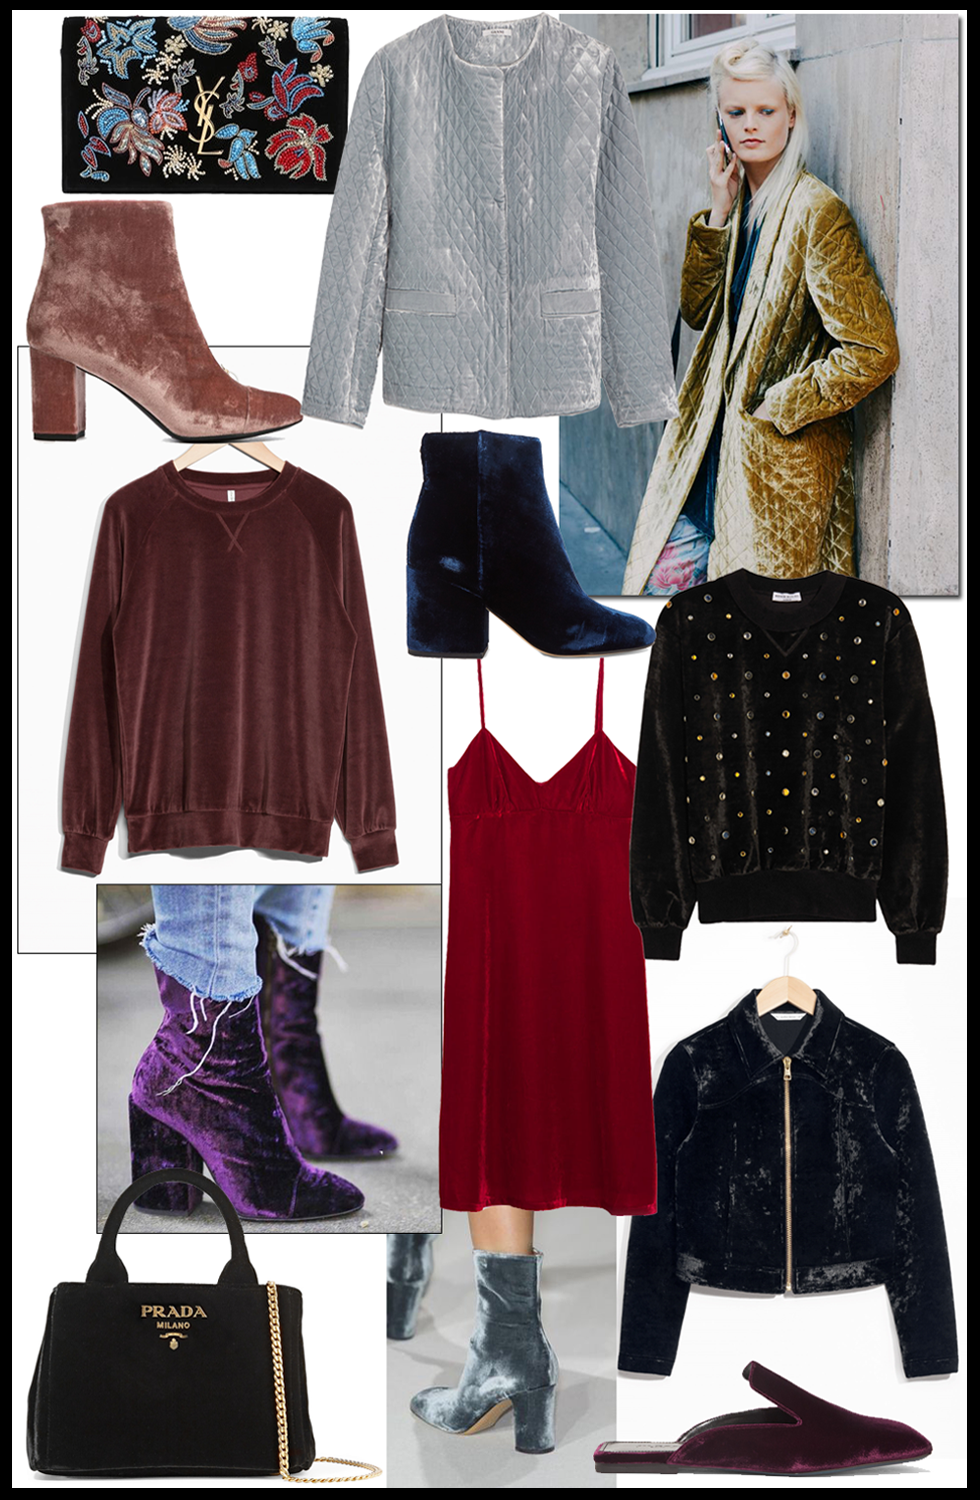 wishlist, trends, shopping, velvet, fashion, blogger, winter, 2016, velours, jil sander, prada, Sonia Rykiel, &Other stories, saint laurent, Morobe